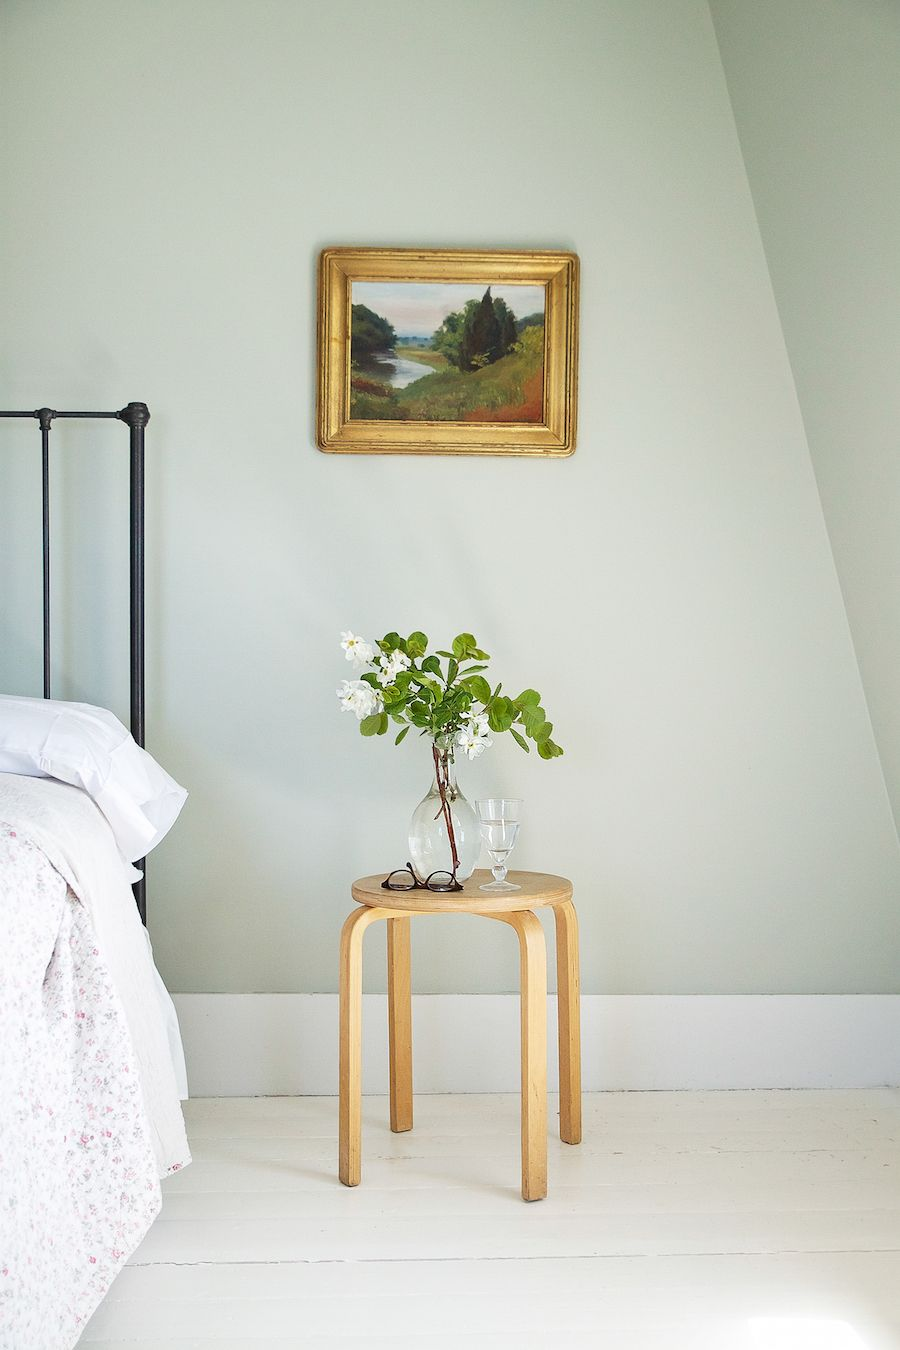 Cape cod summer bedrooms refreshed with farrow ball - Farrow and ball decoration ...